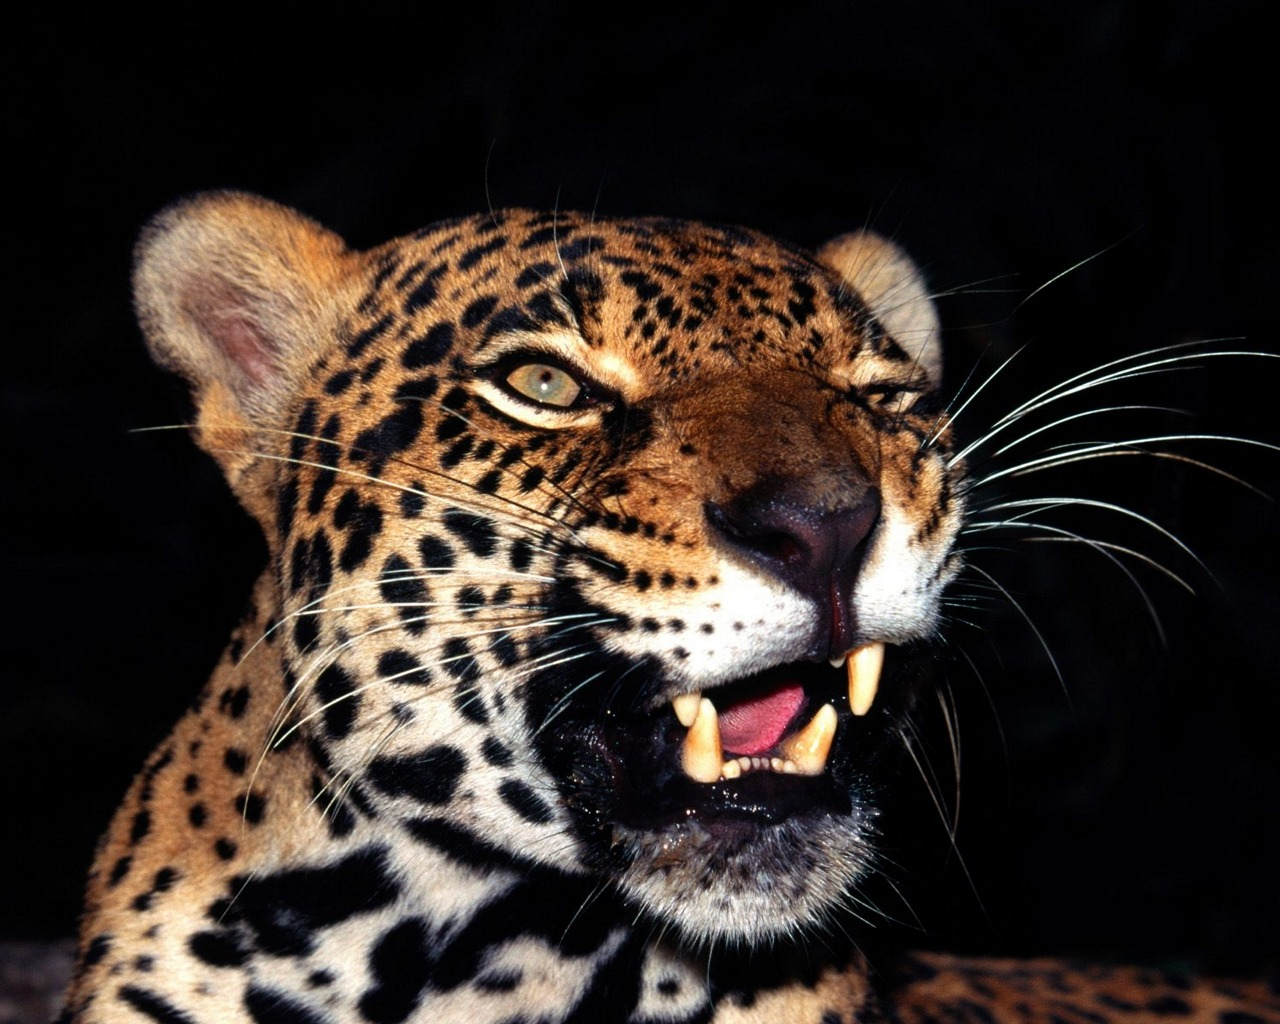 animals wallpapers amazing leopard face cute cats animal cheetah breathtaking cat pretty leopards tiger eat